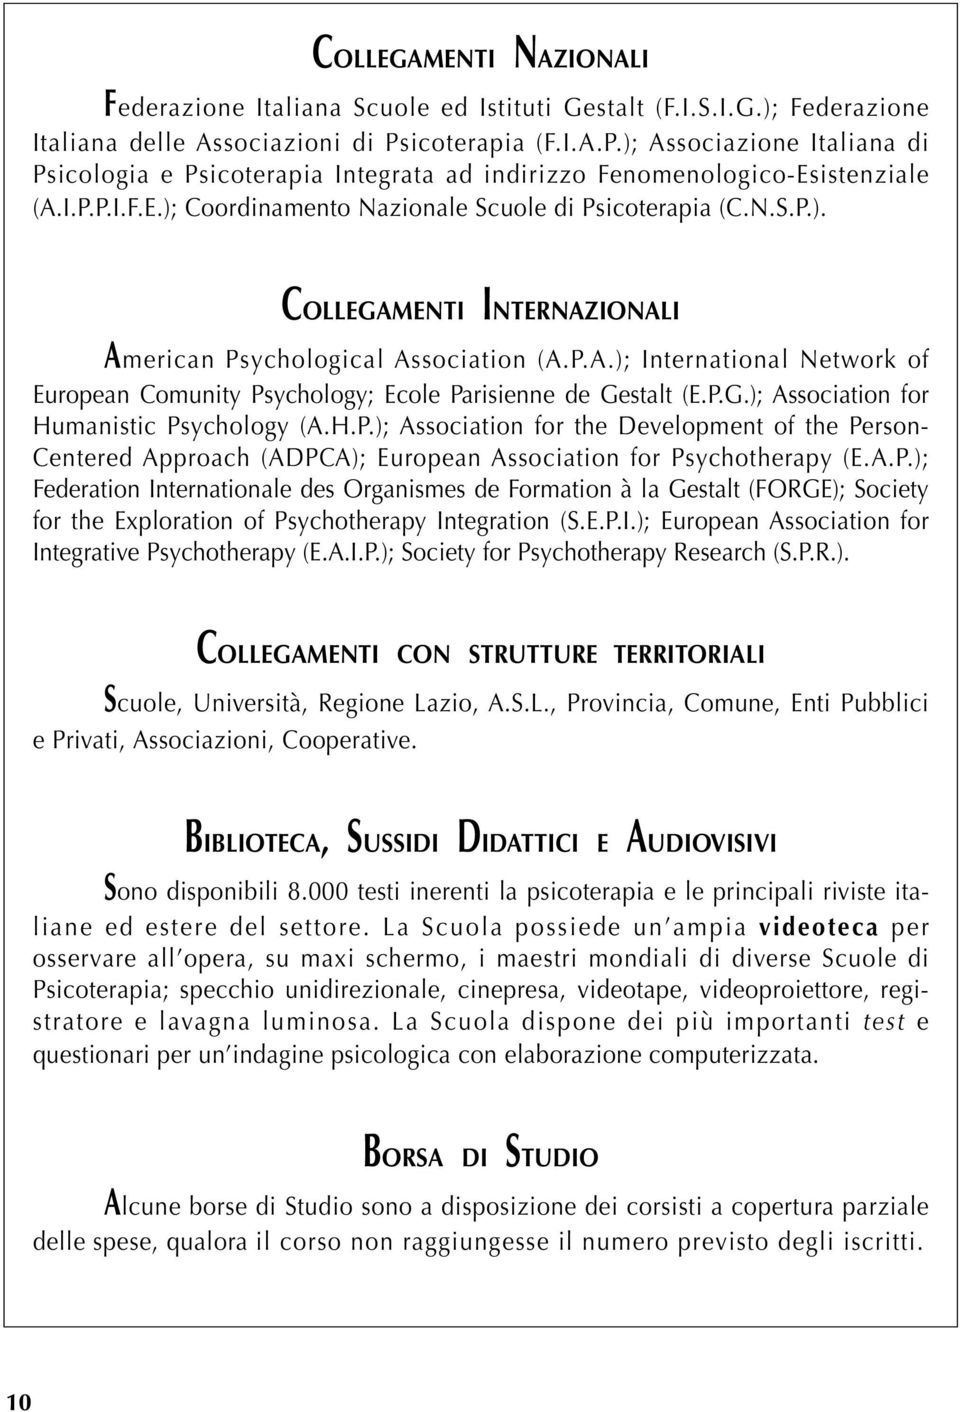 P.A.); International Network of European Comunity Psychology; Ecole Parisienne de Gestalt (E.P.G.); Association for Humanistic Psychology (A.H.P.); Association for the Development of the Person- Centered Approach (ADPCA); European Association for Psychotherapy (E.